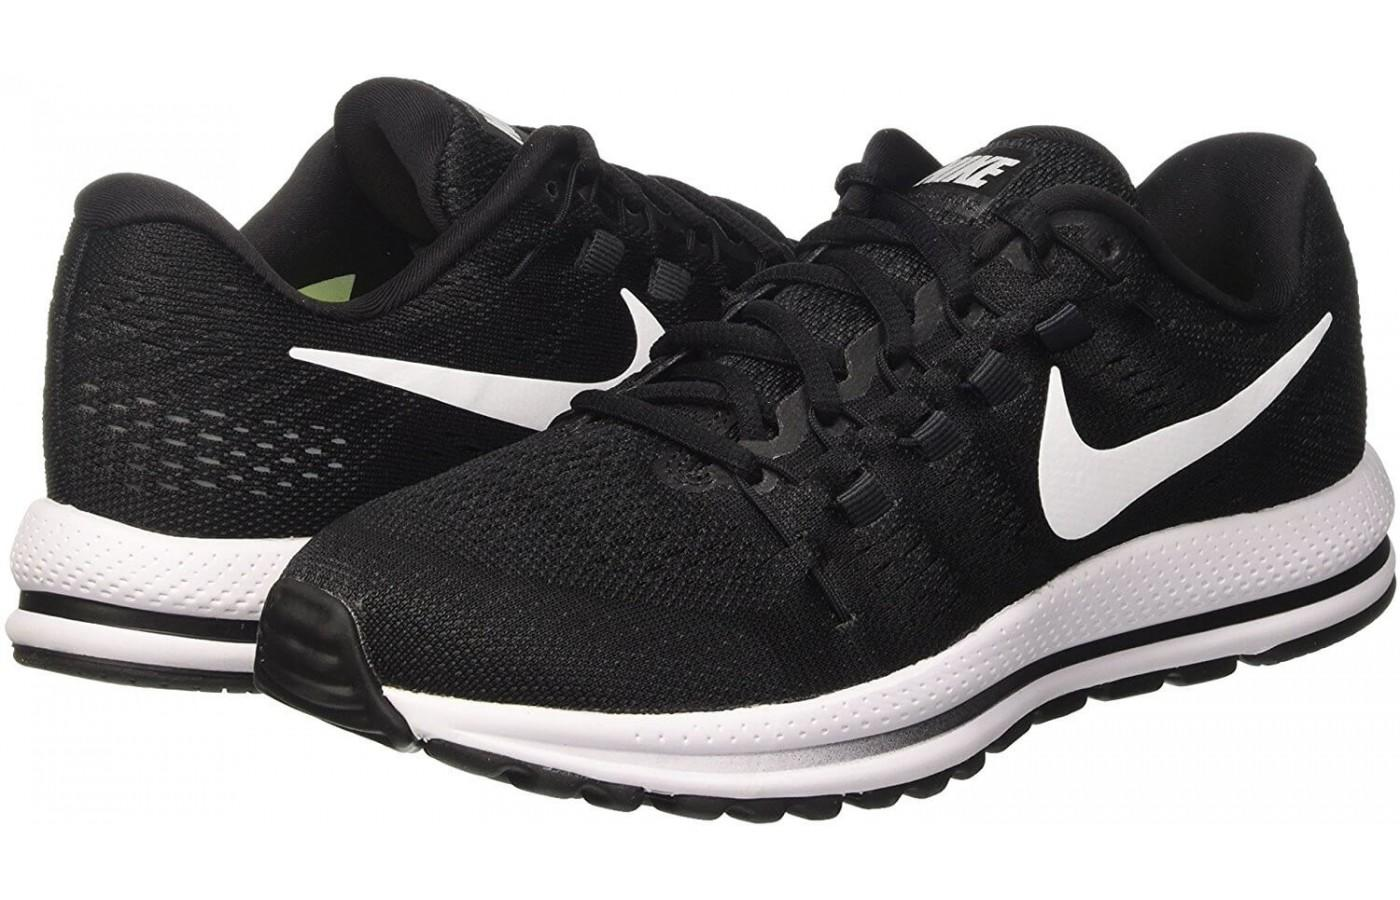 The Nike Air Zoom Vomero 12 has a nice look and design